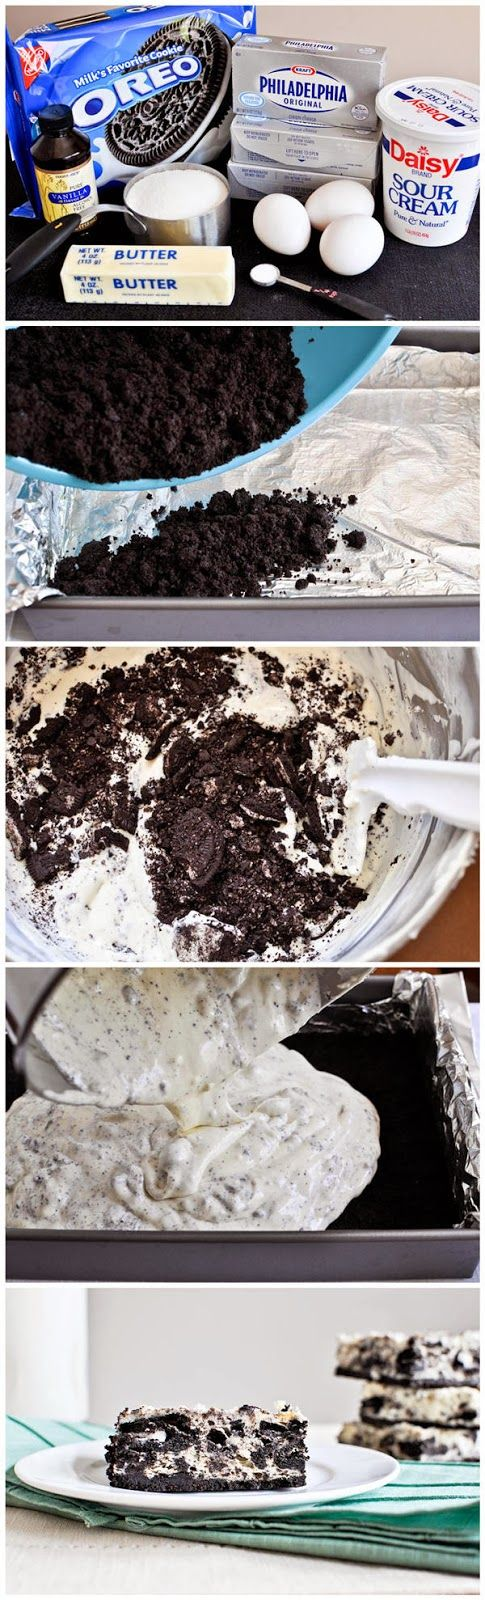 toptenlook: Cookies and Cream Cheesecake Bars